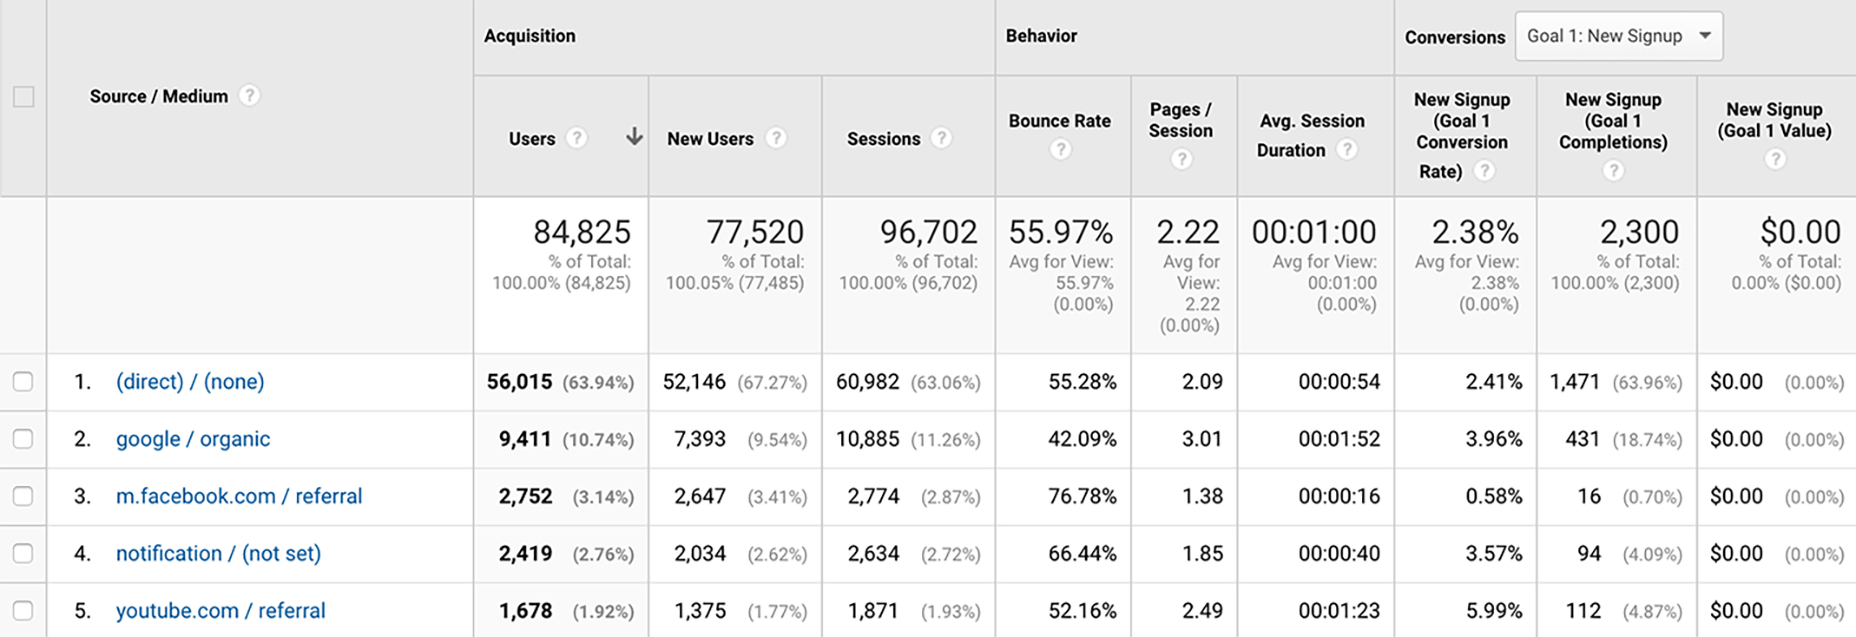 Google Analytics Conversion Rates By Source